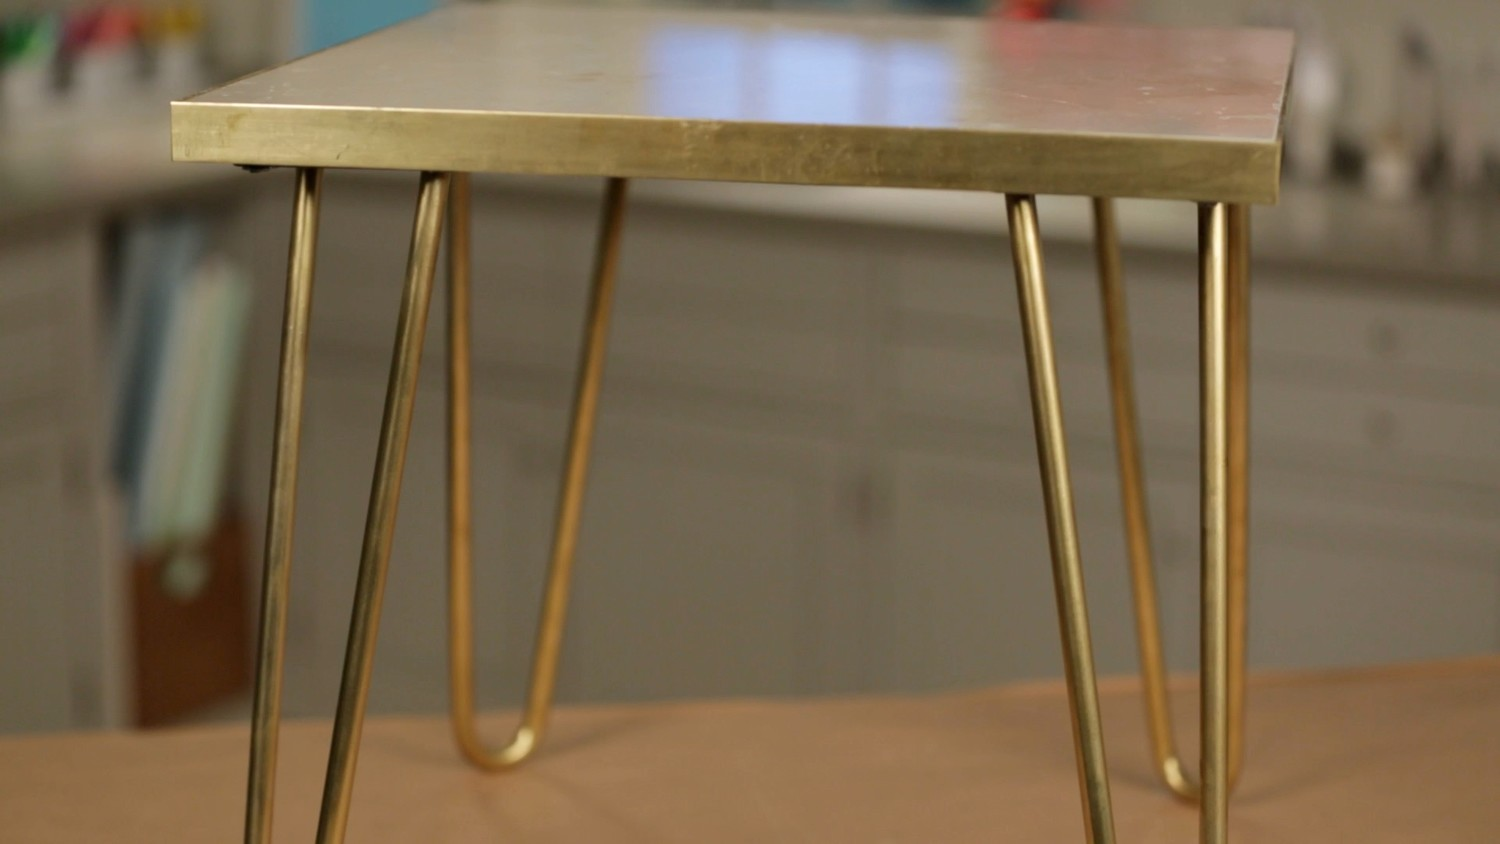 video brass leg side table project martha stewart horiz drum accent small chairs for living room modern farmhouse coffee pub and west elm console led night light cool end ideas